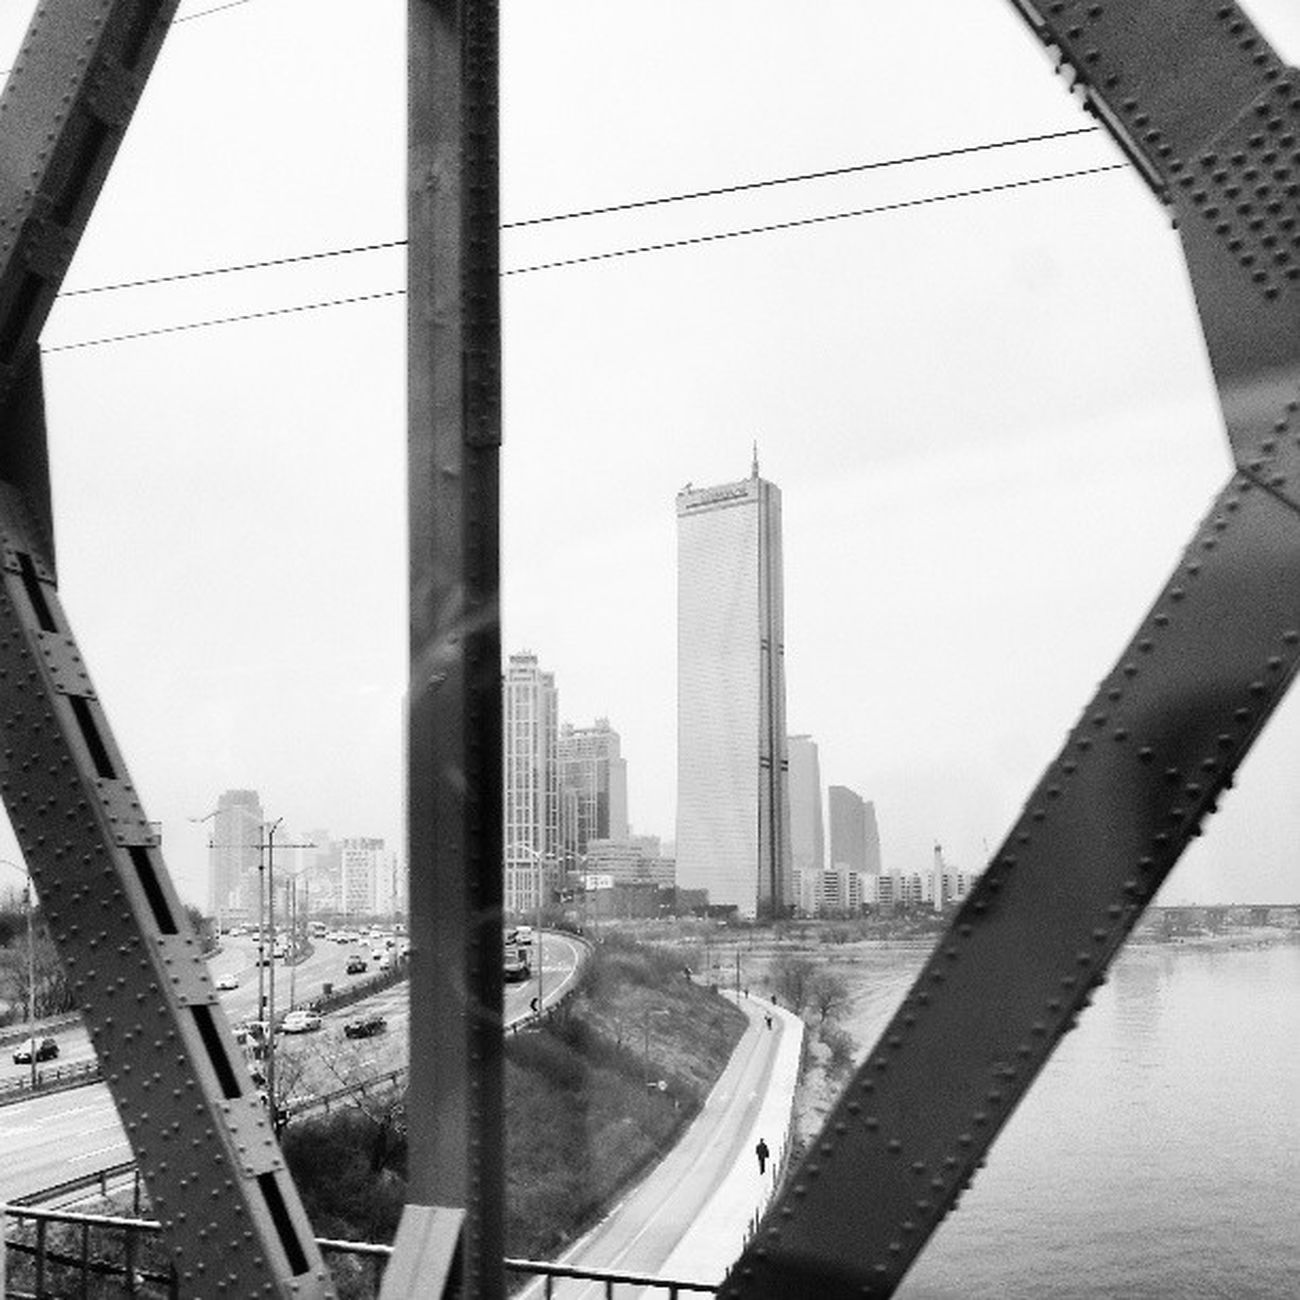 '63 Building'. Picture taken from the KTX heading towards Busan on April Fool's Day.SamsungS111 Webstagram Instagrammers Bnw_worldwide Gang_family Walkwaywhy Bws_world Bws_artist_asia Overhung Instasg Photogeekdom Snappeak All_shots Latergram Instagramhub